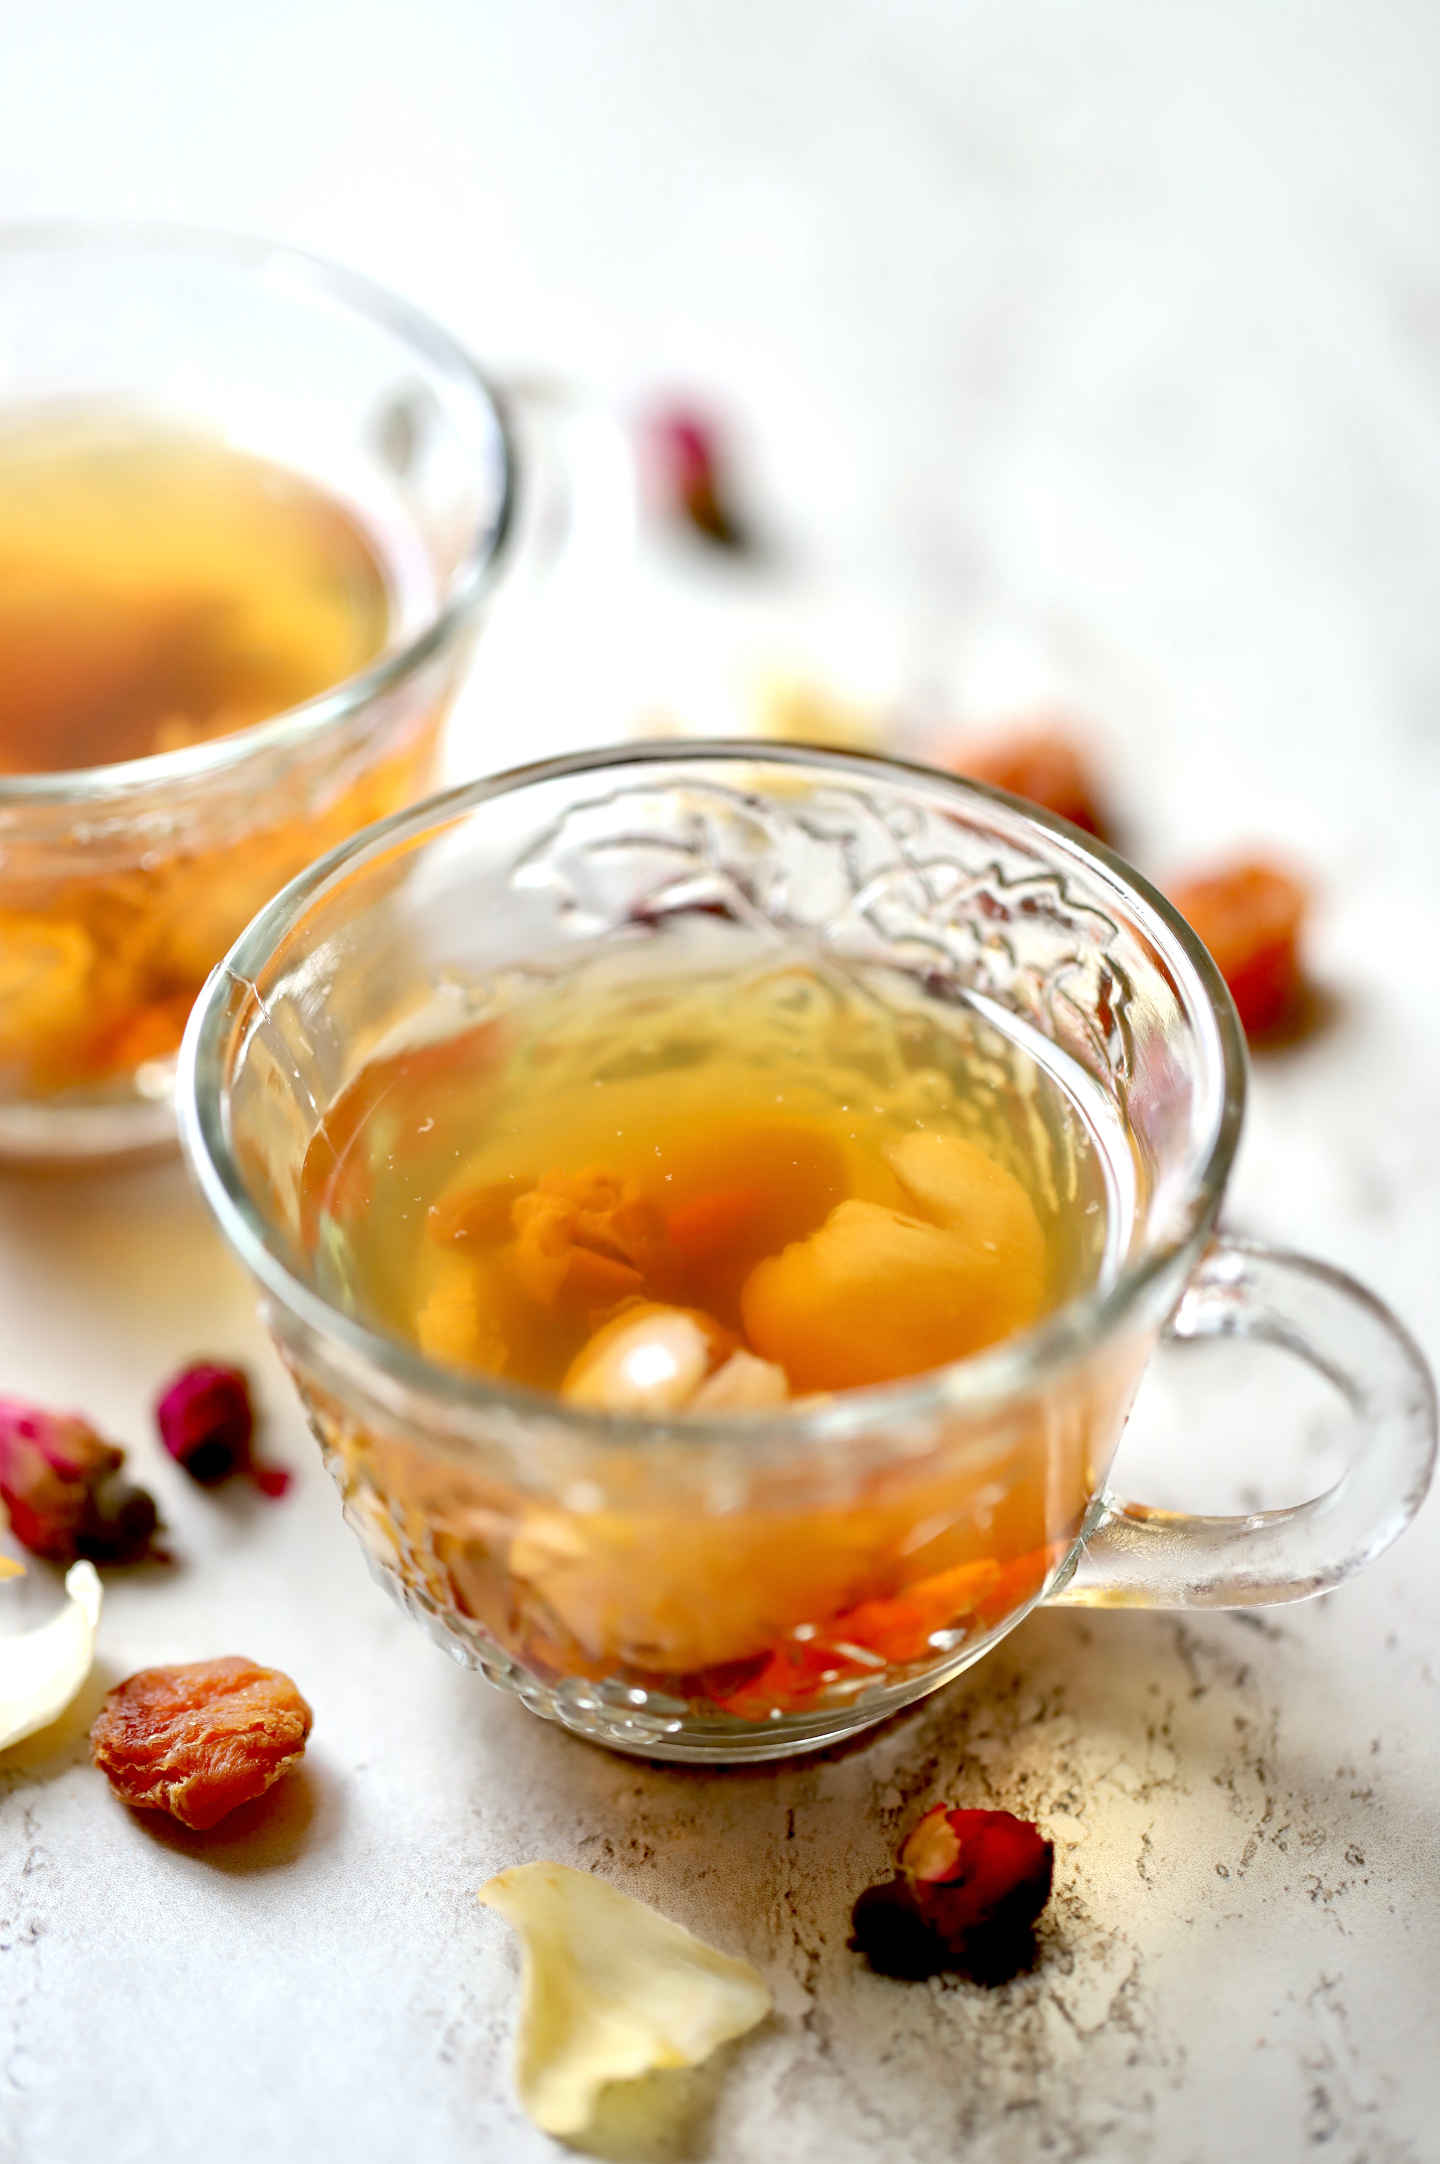 Chinese fruit tea eases anxiety and promotes quality sleep